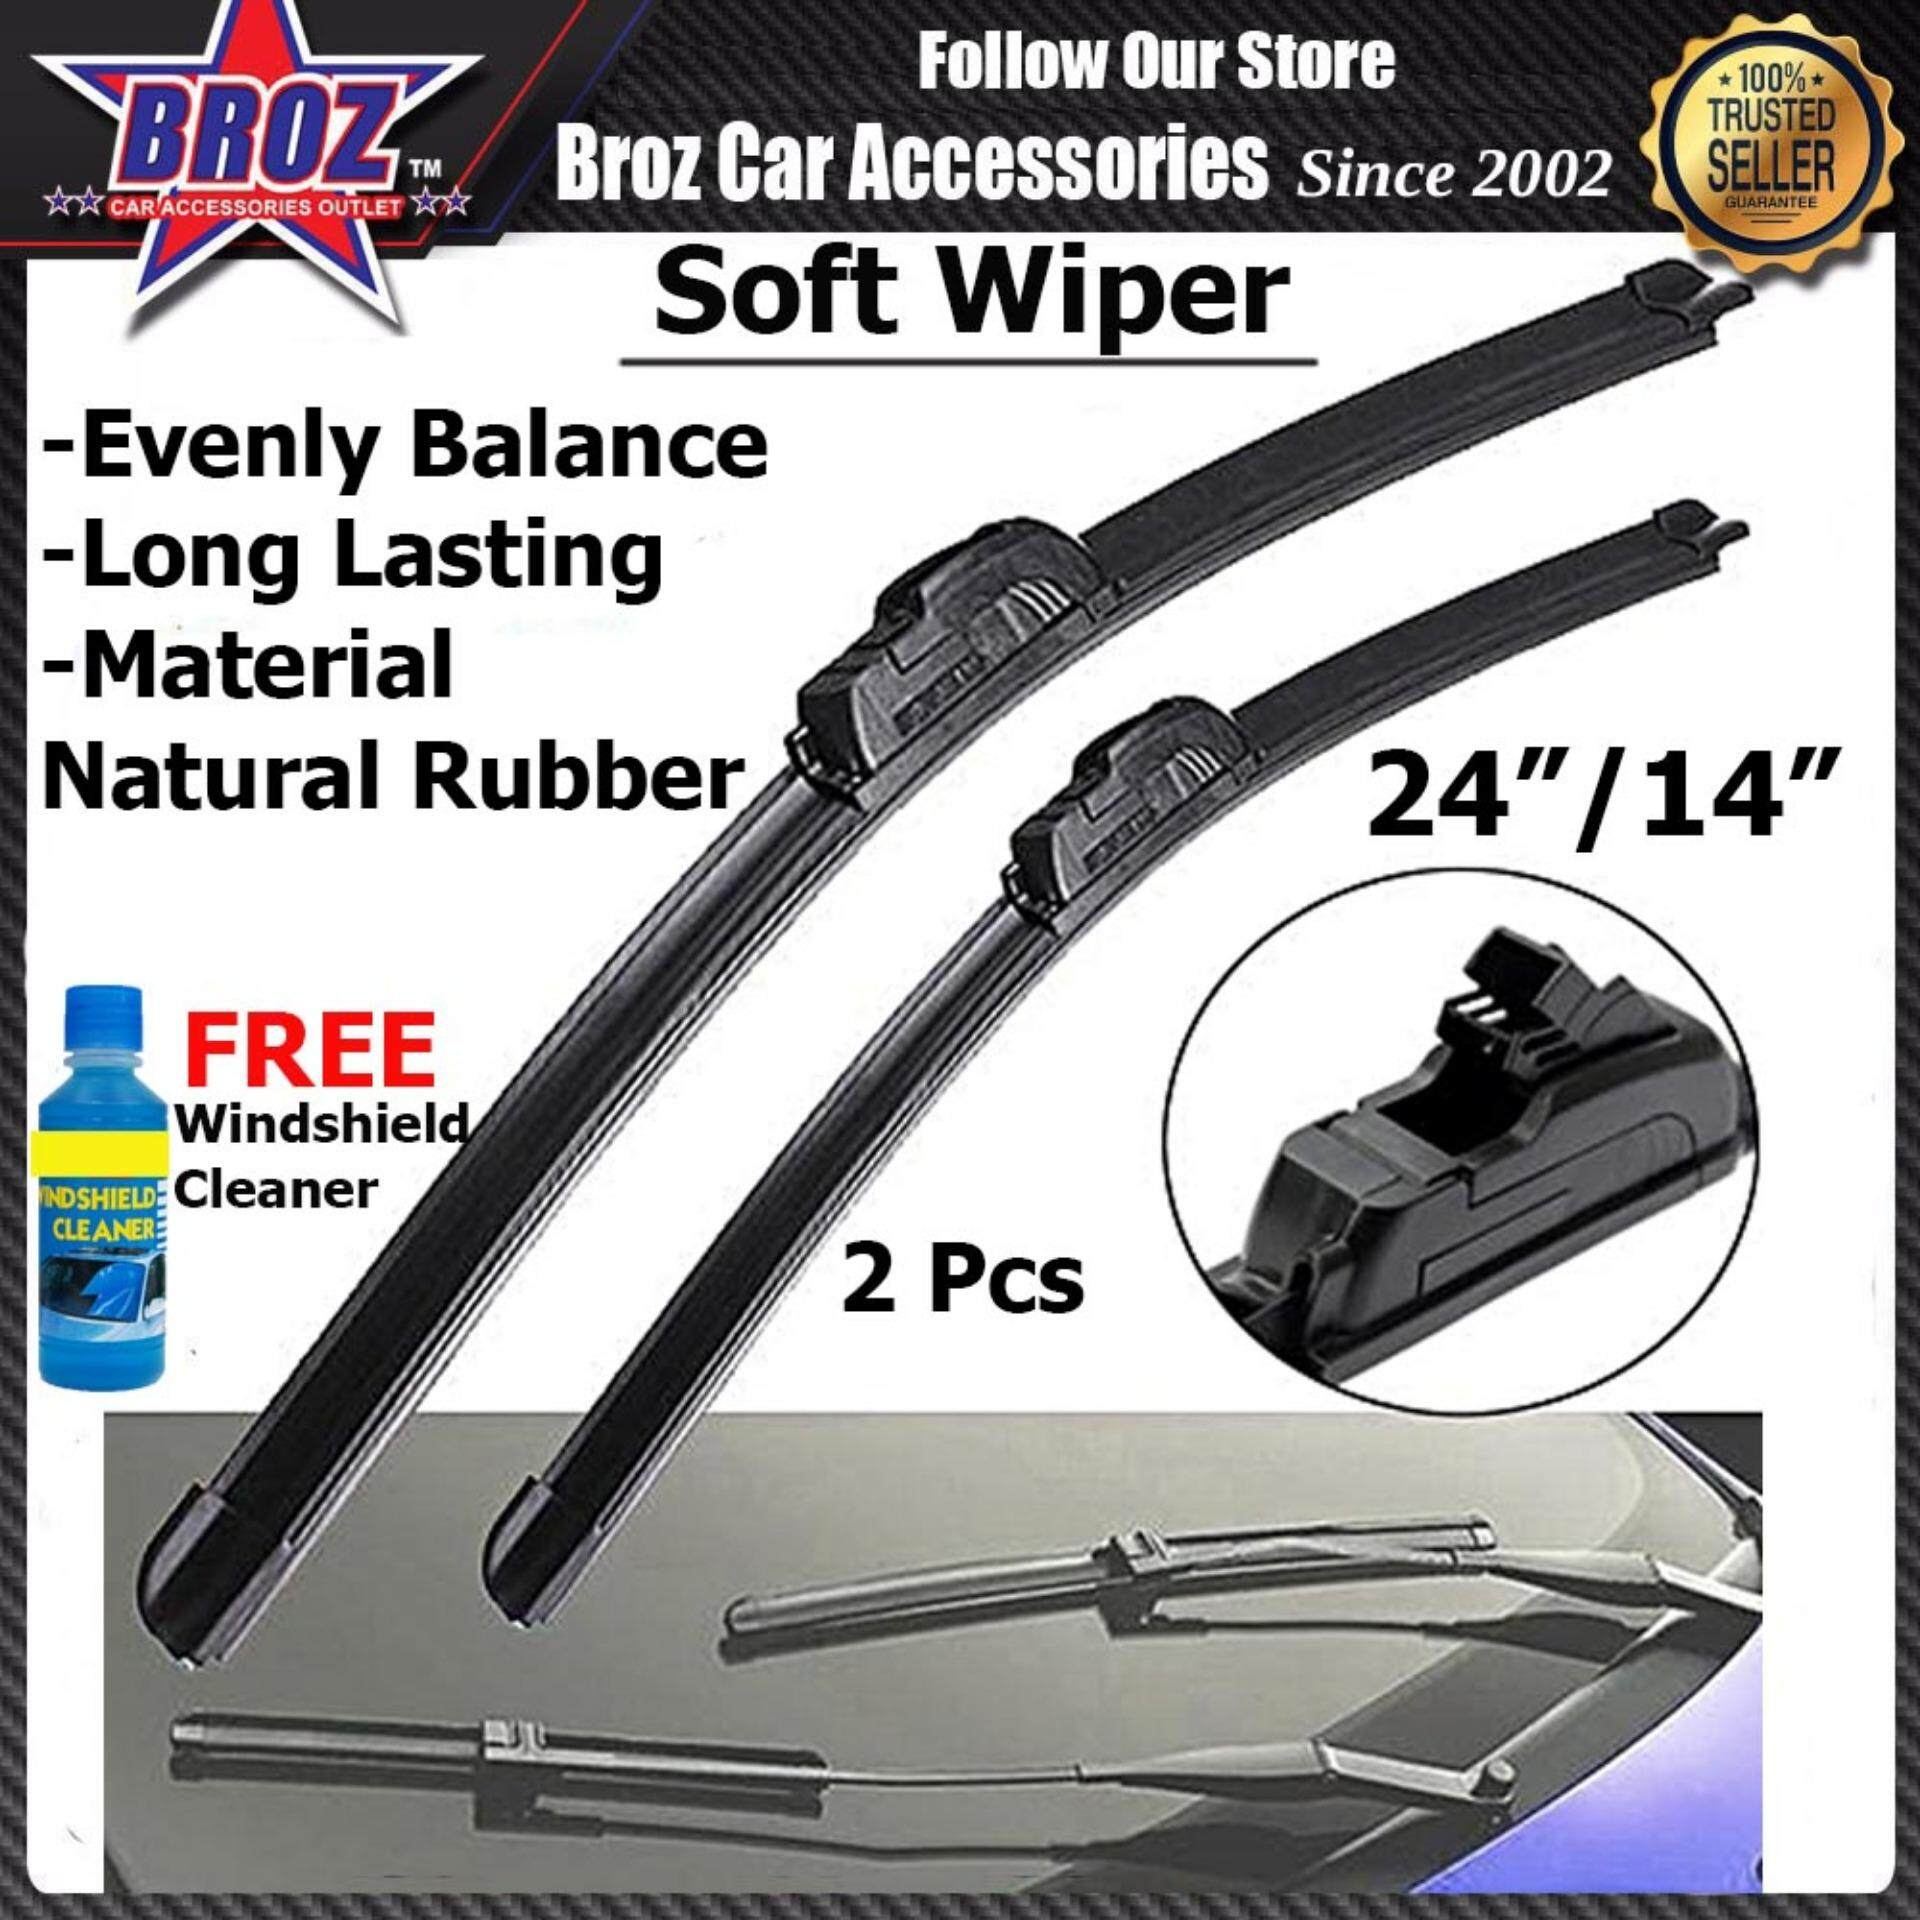 "City 2003-2013 Jazz 2003-2007 Wish 2010-2017 Livina Yaris Vios 2007-2019 Car Natural Rubber Soft Wiper 24""/14"" (2pcs)"